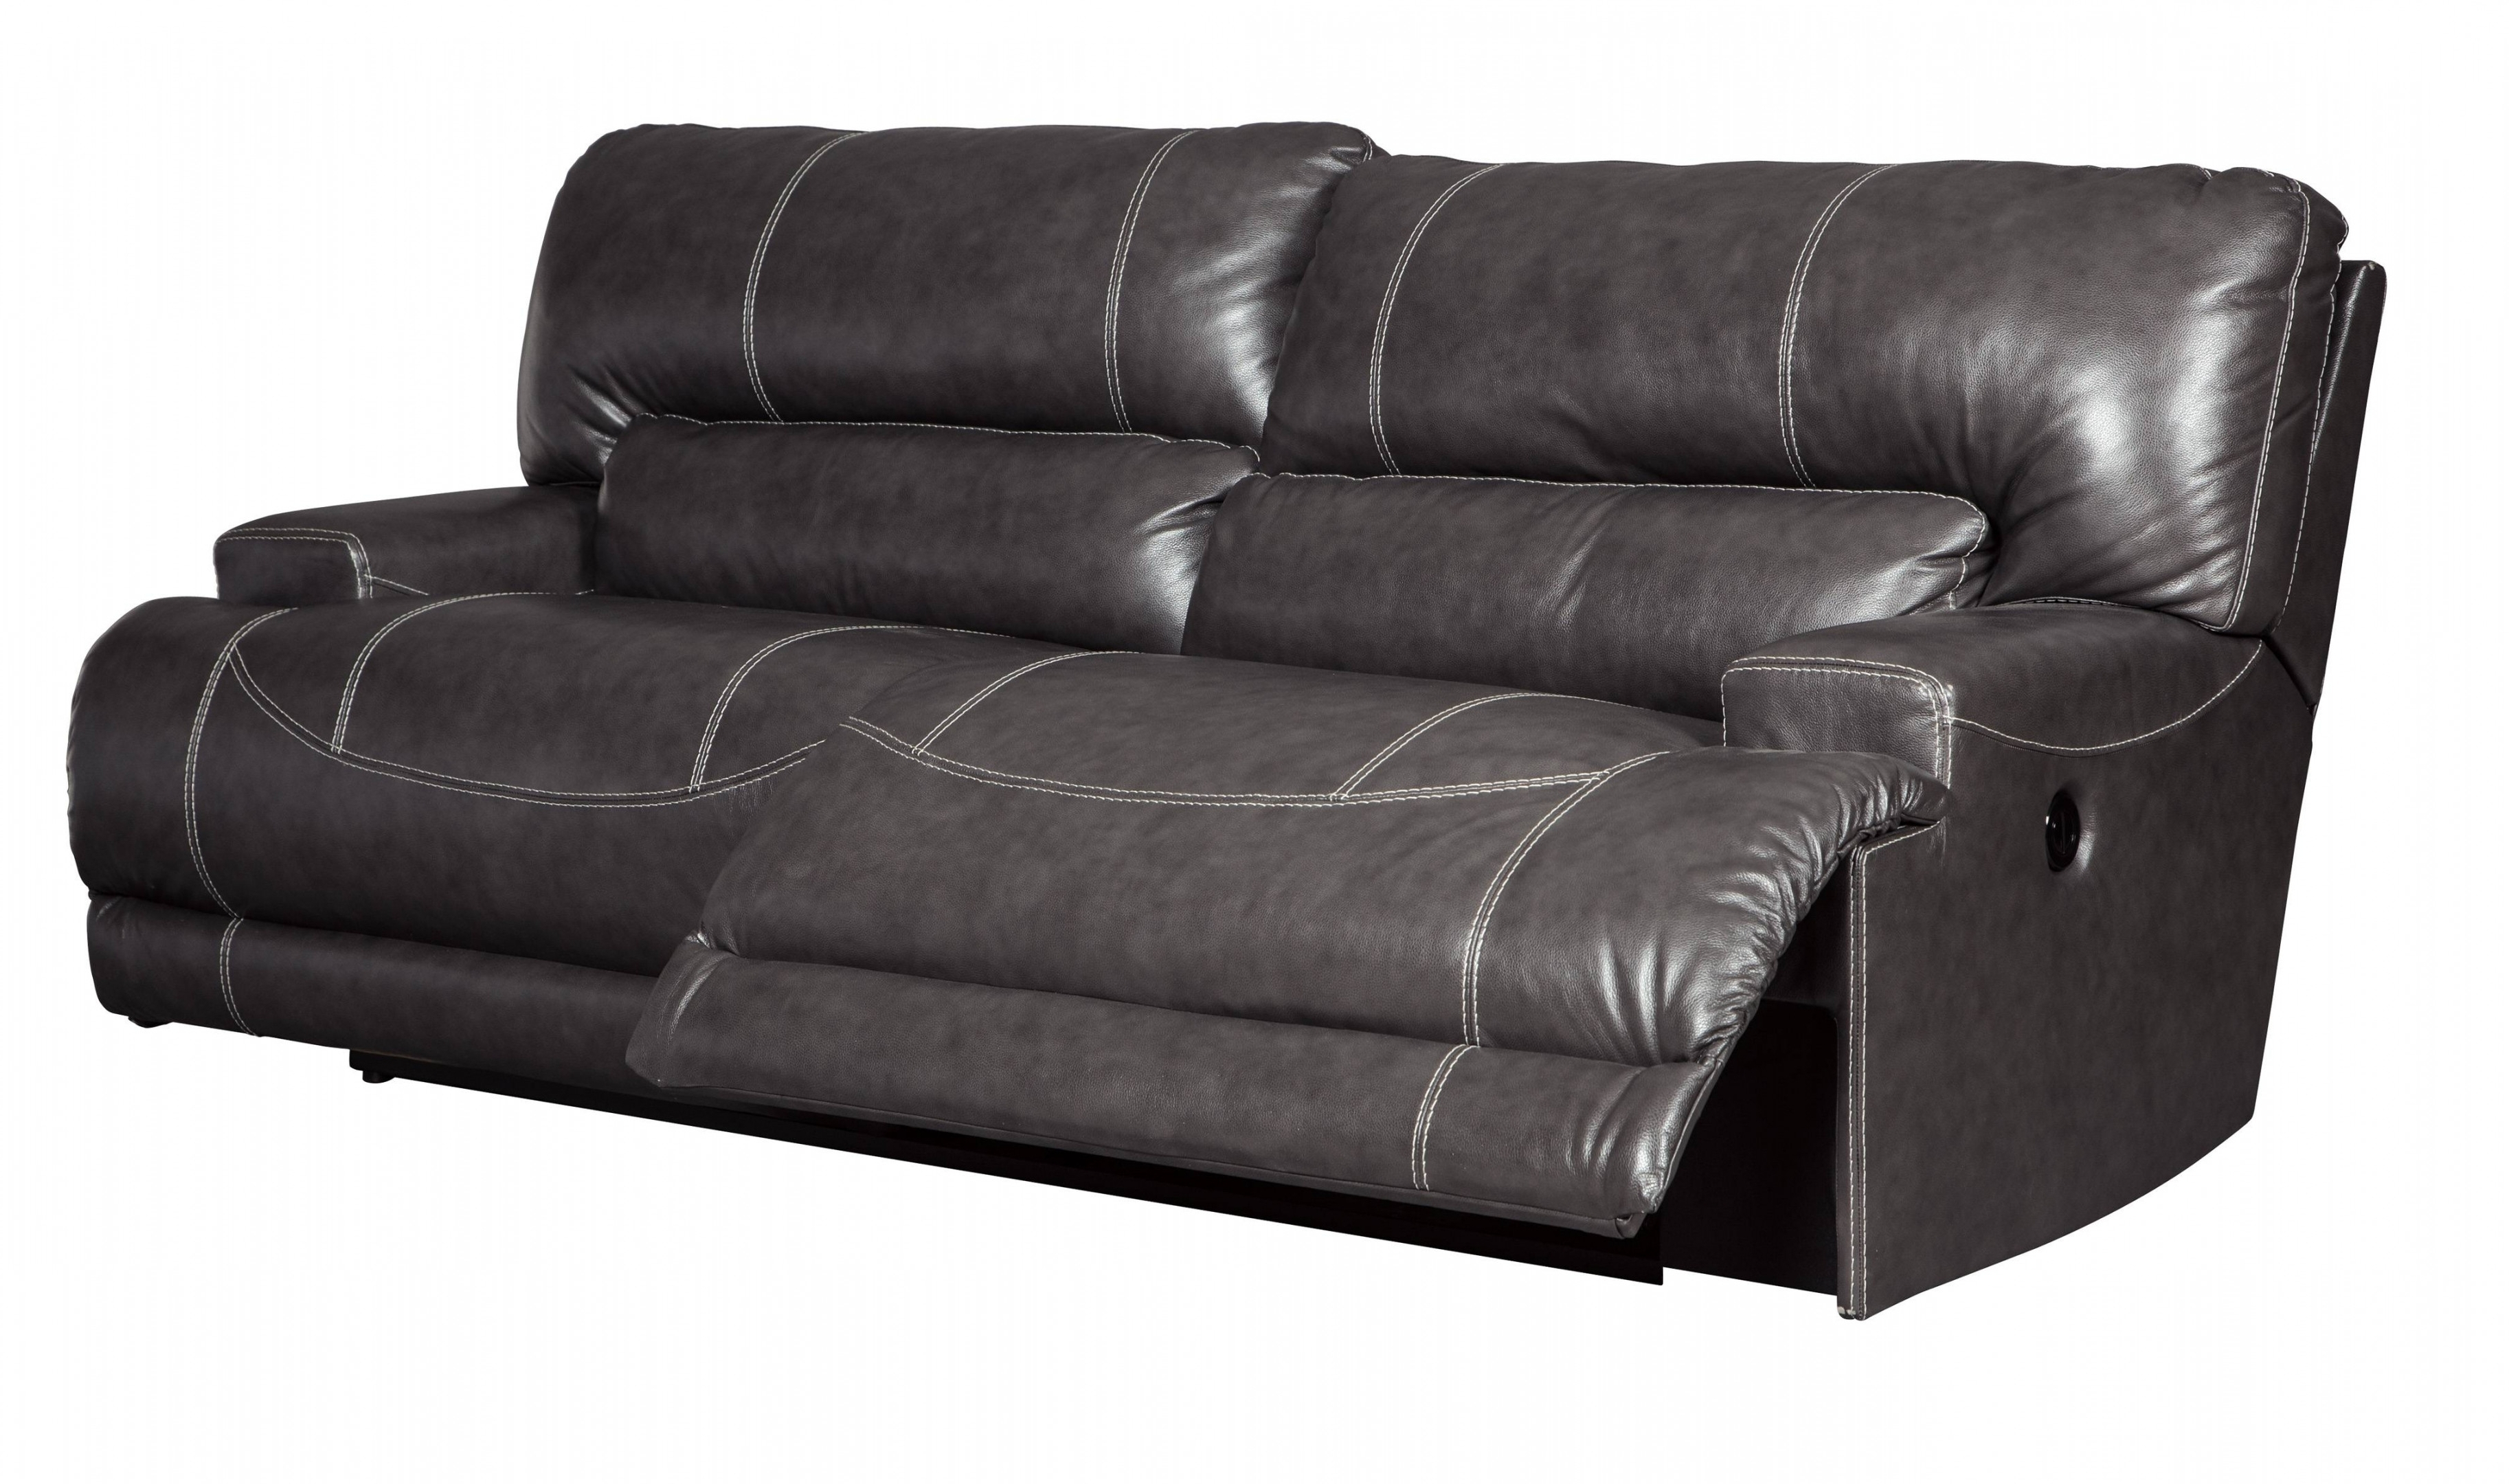 Home Design And With Regard To 2 Seater Recliner Leather Sofas (View 11 of 20)